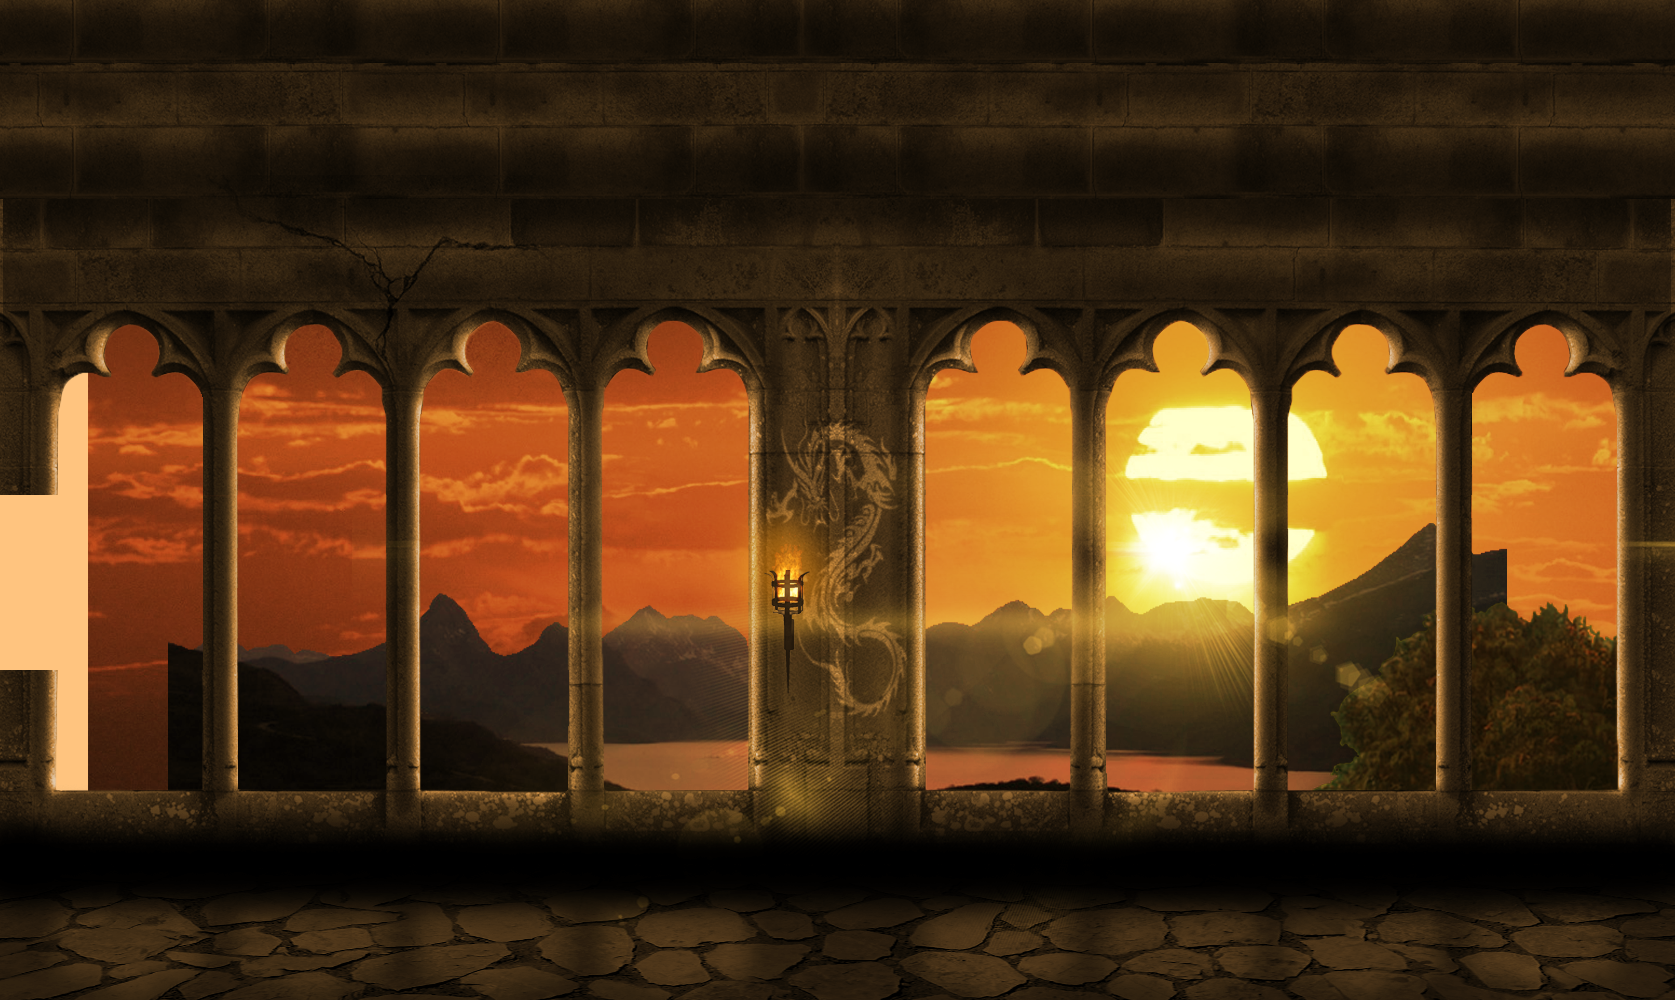 castle_halfway_early_preview4_by_excahm-